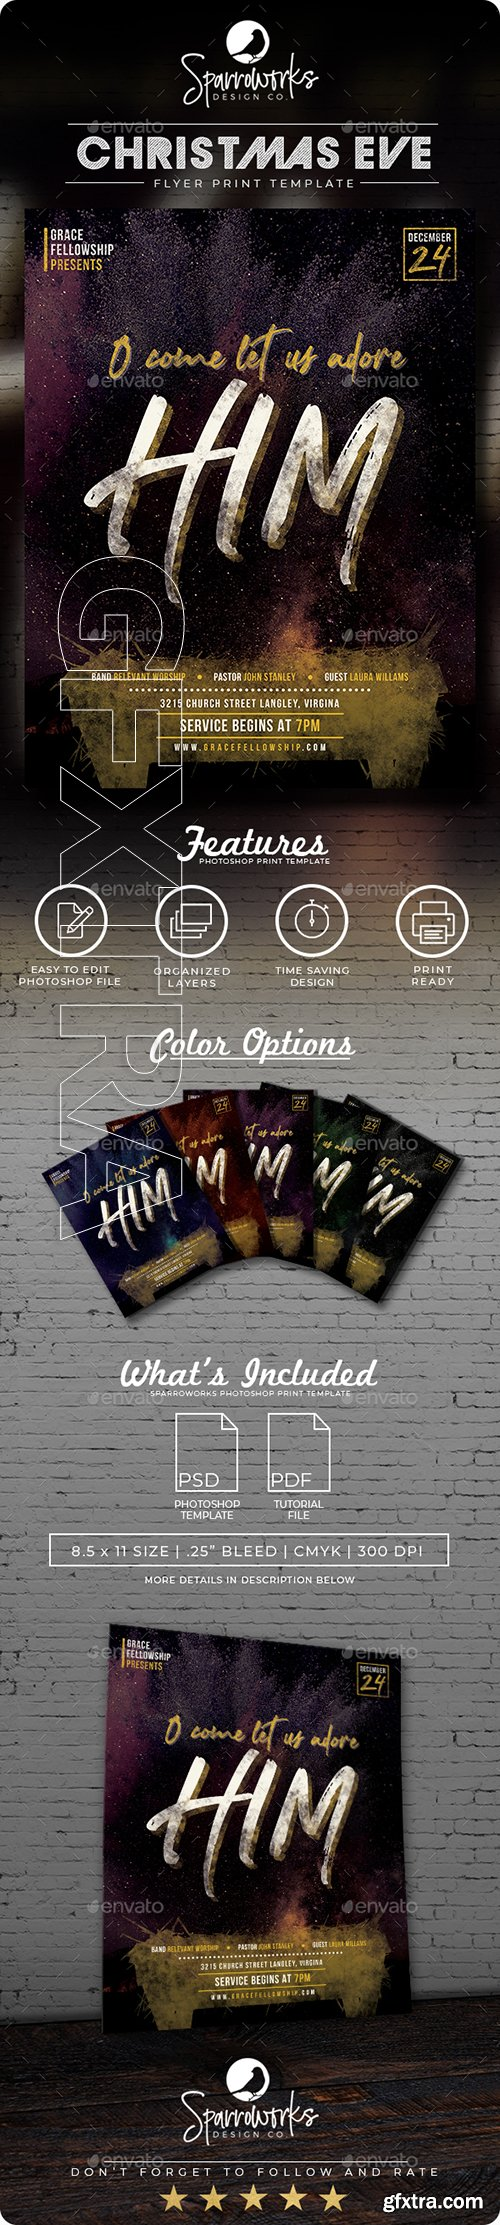 GraphicRiver - O Come Let Us Adore Him Holiday Flyer Template 22875964